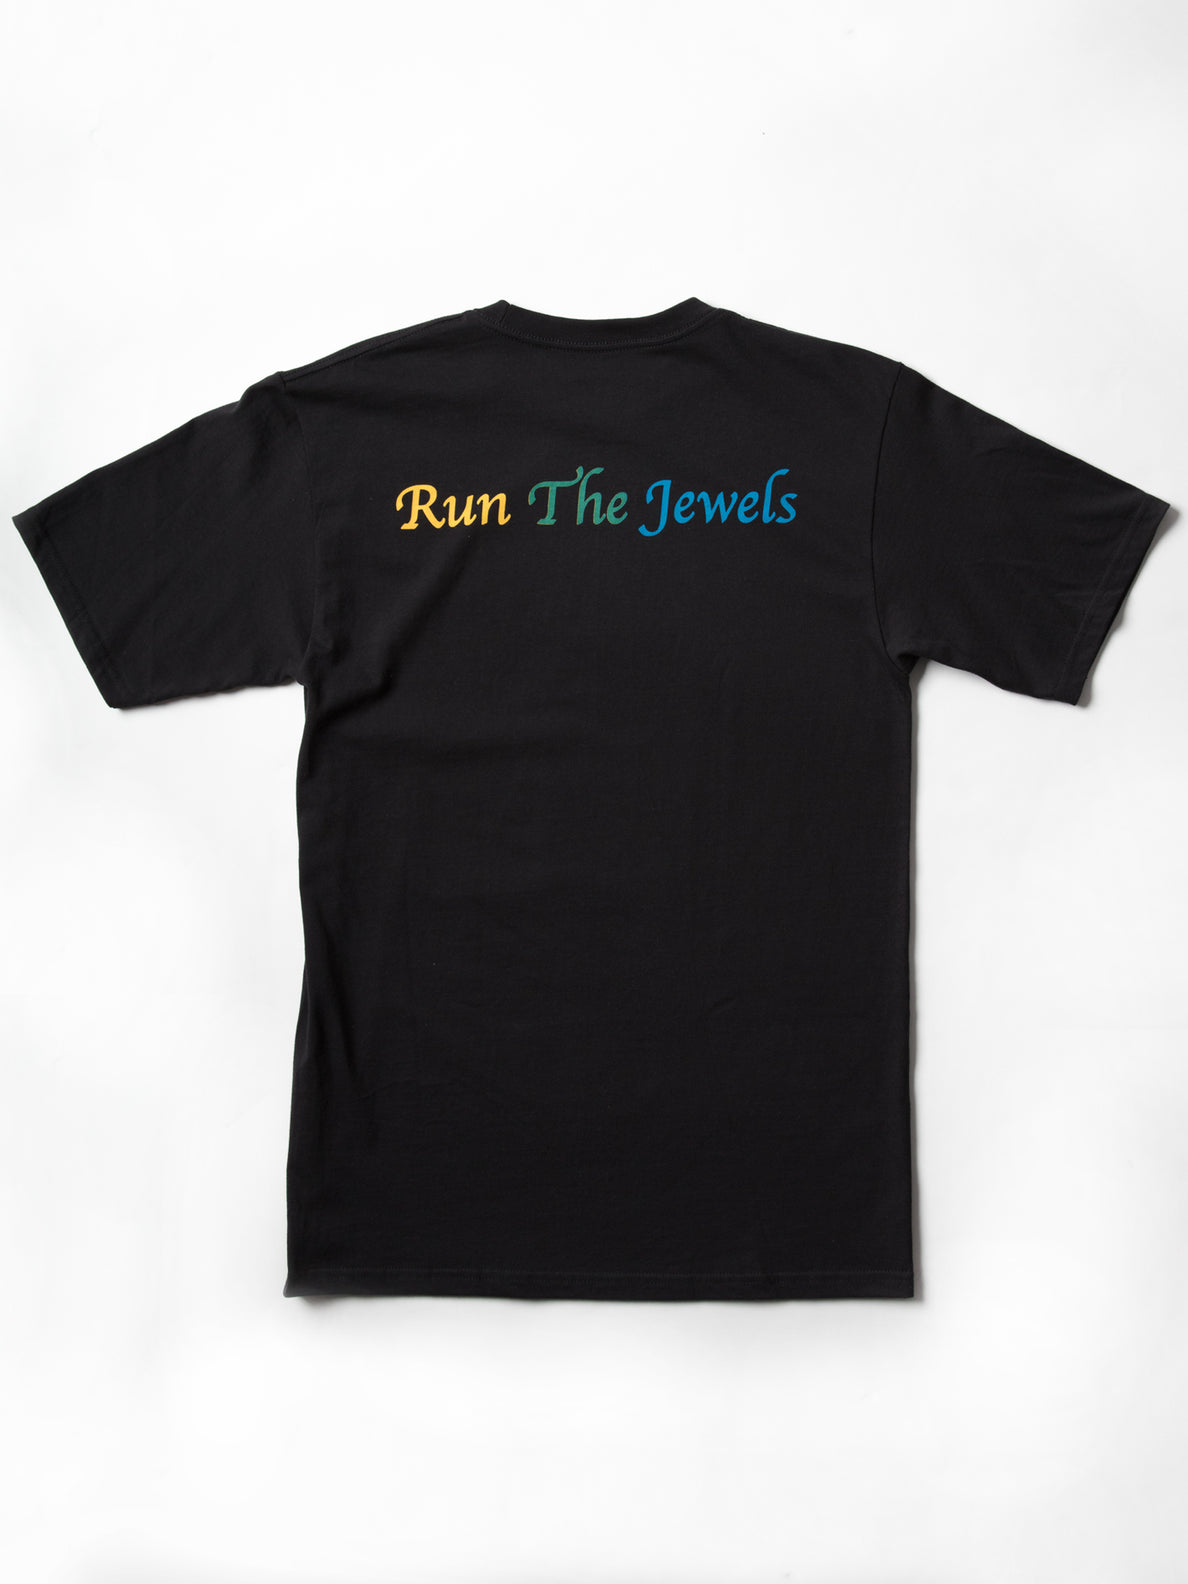 Run The Jewels Rtj Tee